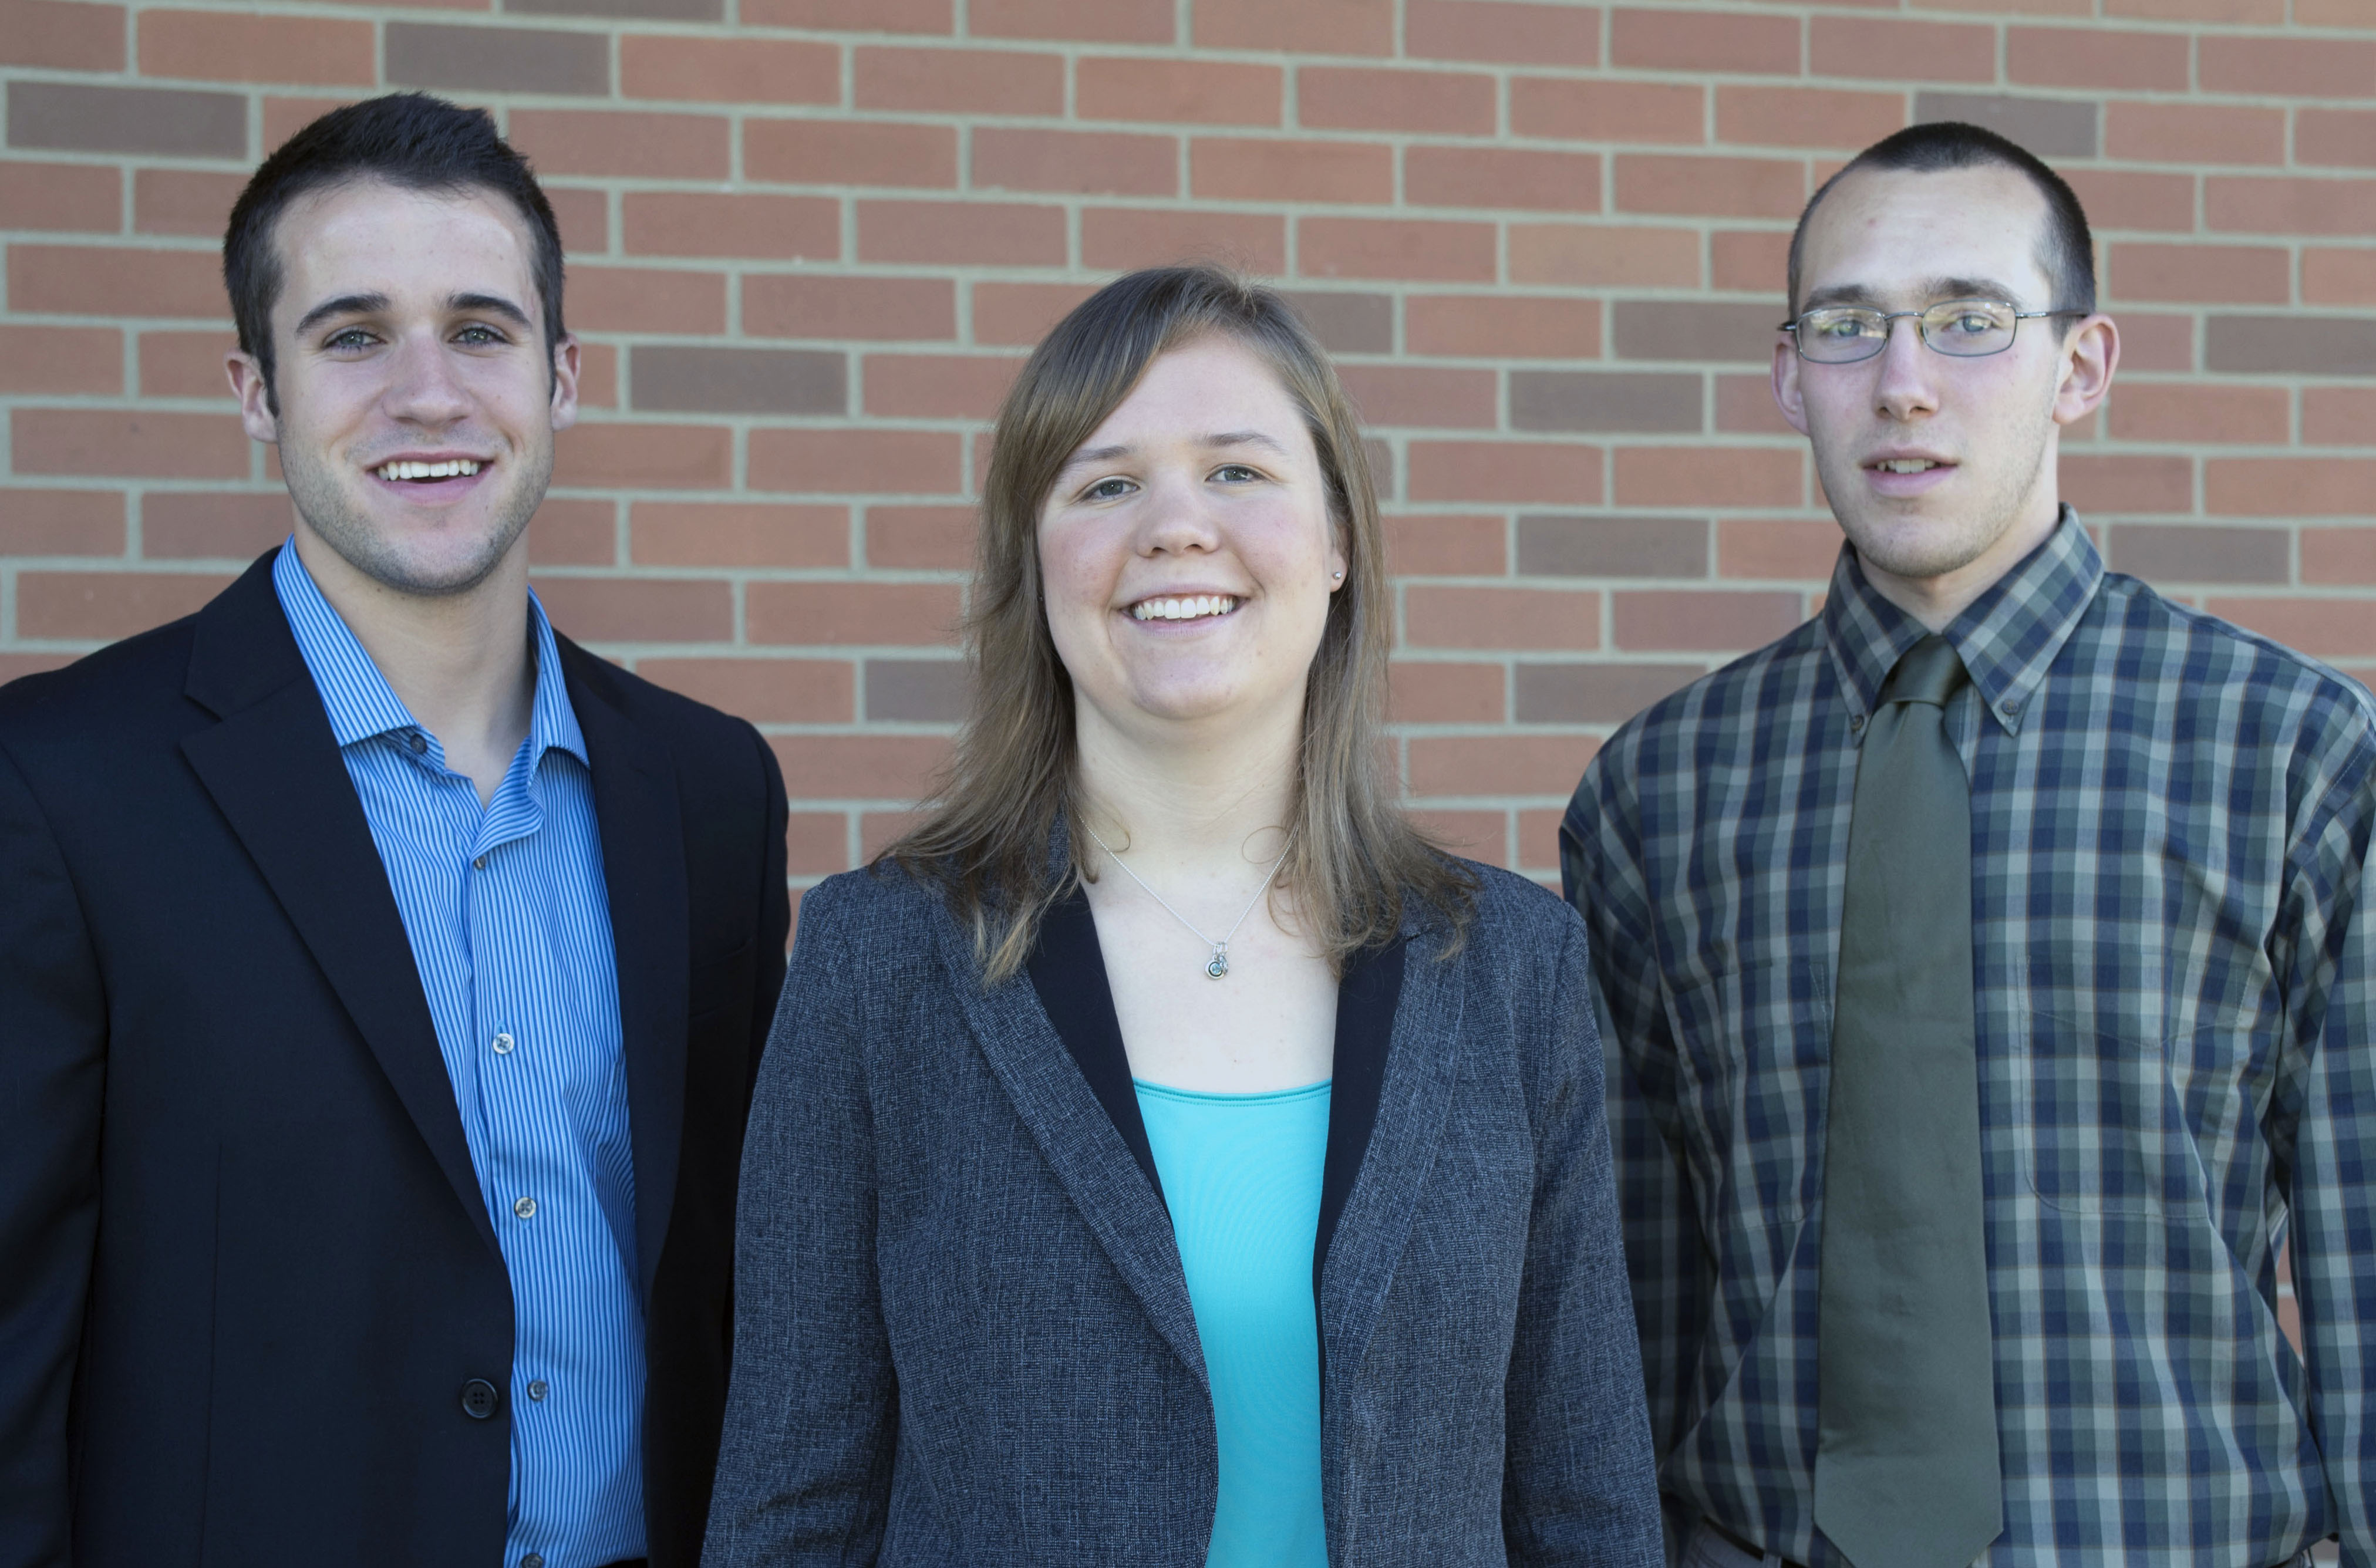 Sirois, Amling, and McKevitt, pictured here, each received a scholarship from the Ohio Space Grant Consortium this year. Not pictured: Krueger, a senior scholarship recipient who is studying abroad this semester.